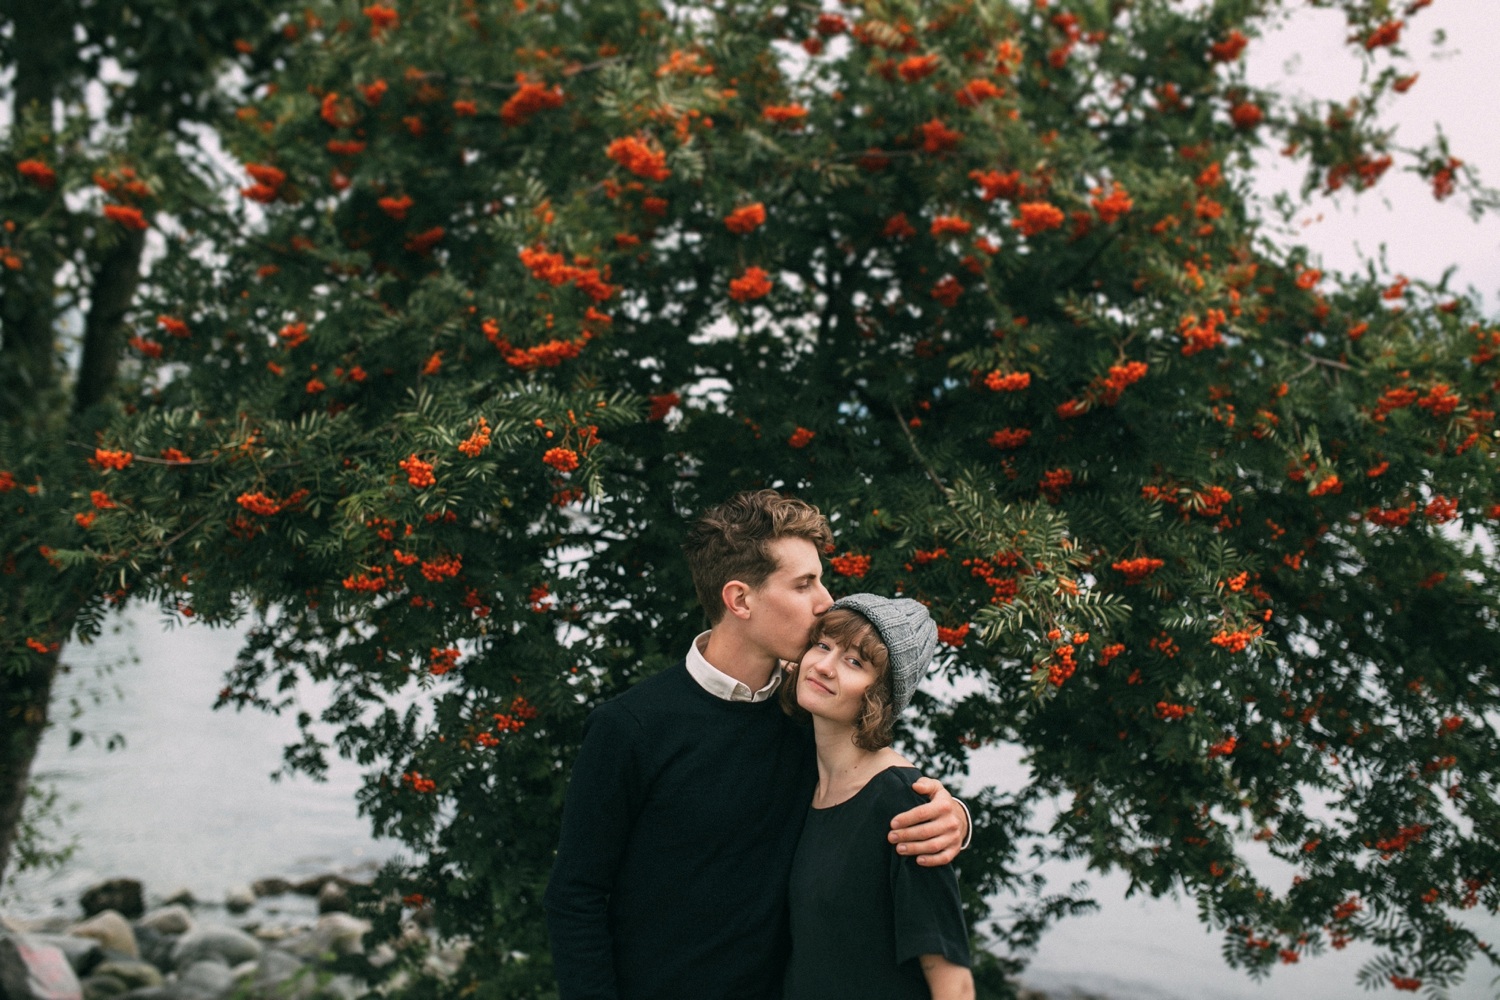 Couple In Love Stand In Front Of Red Berry Bush